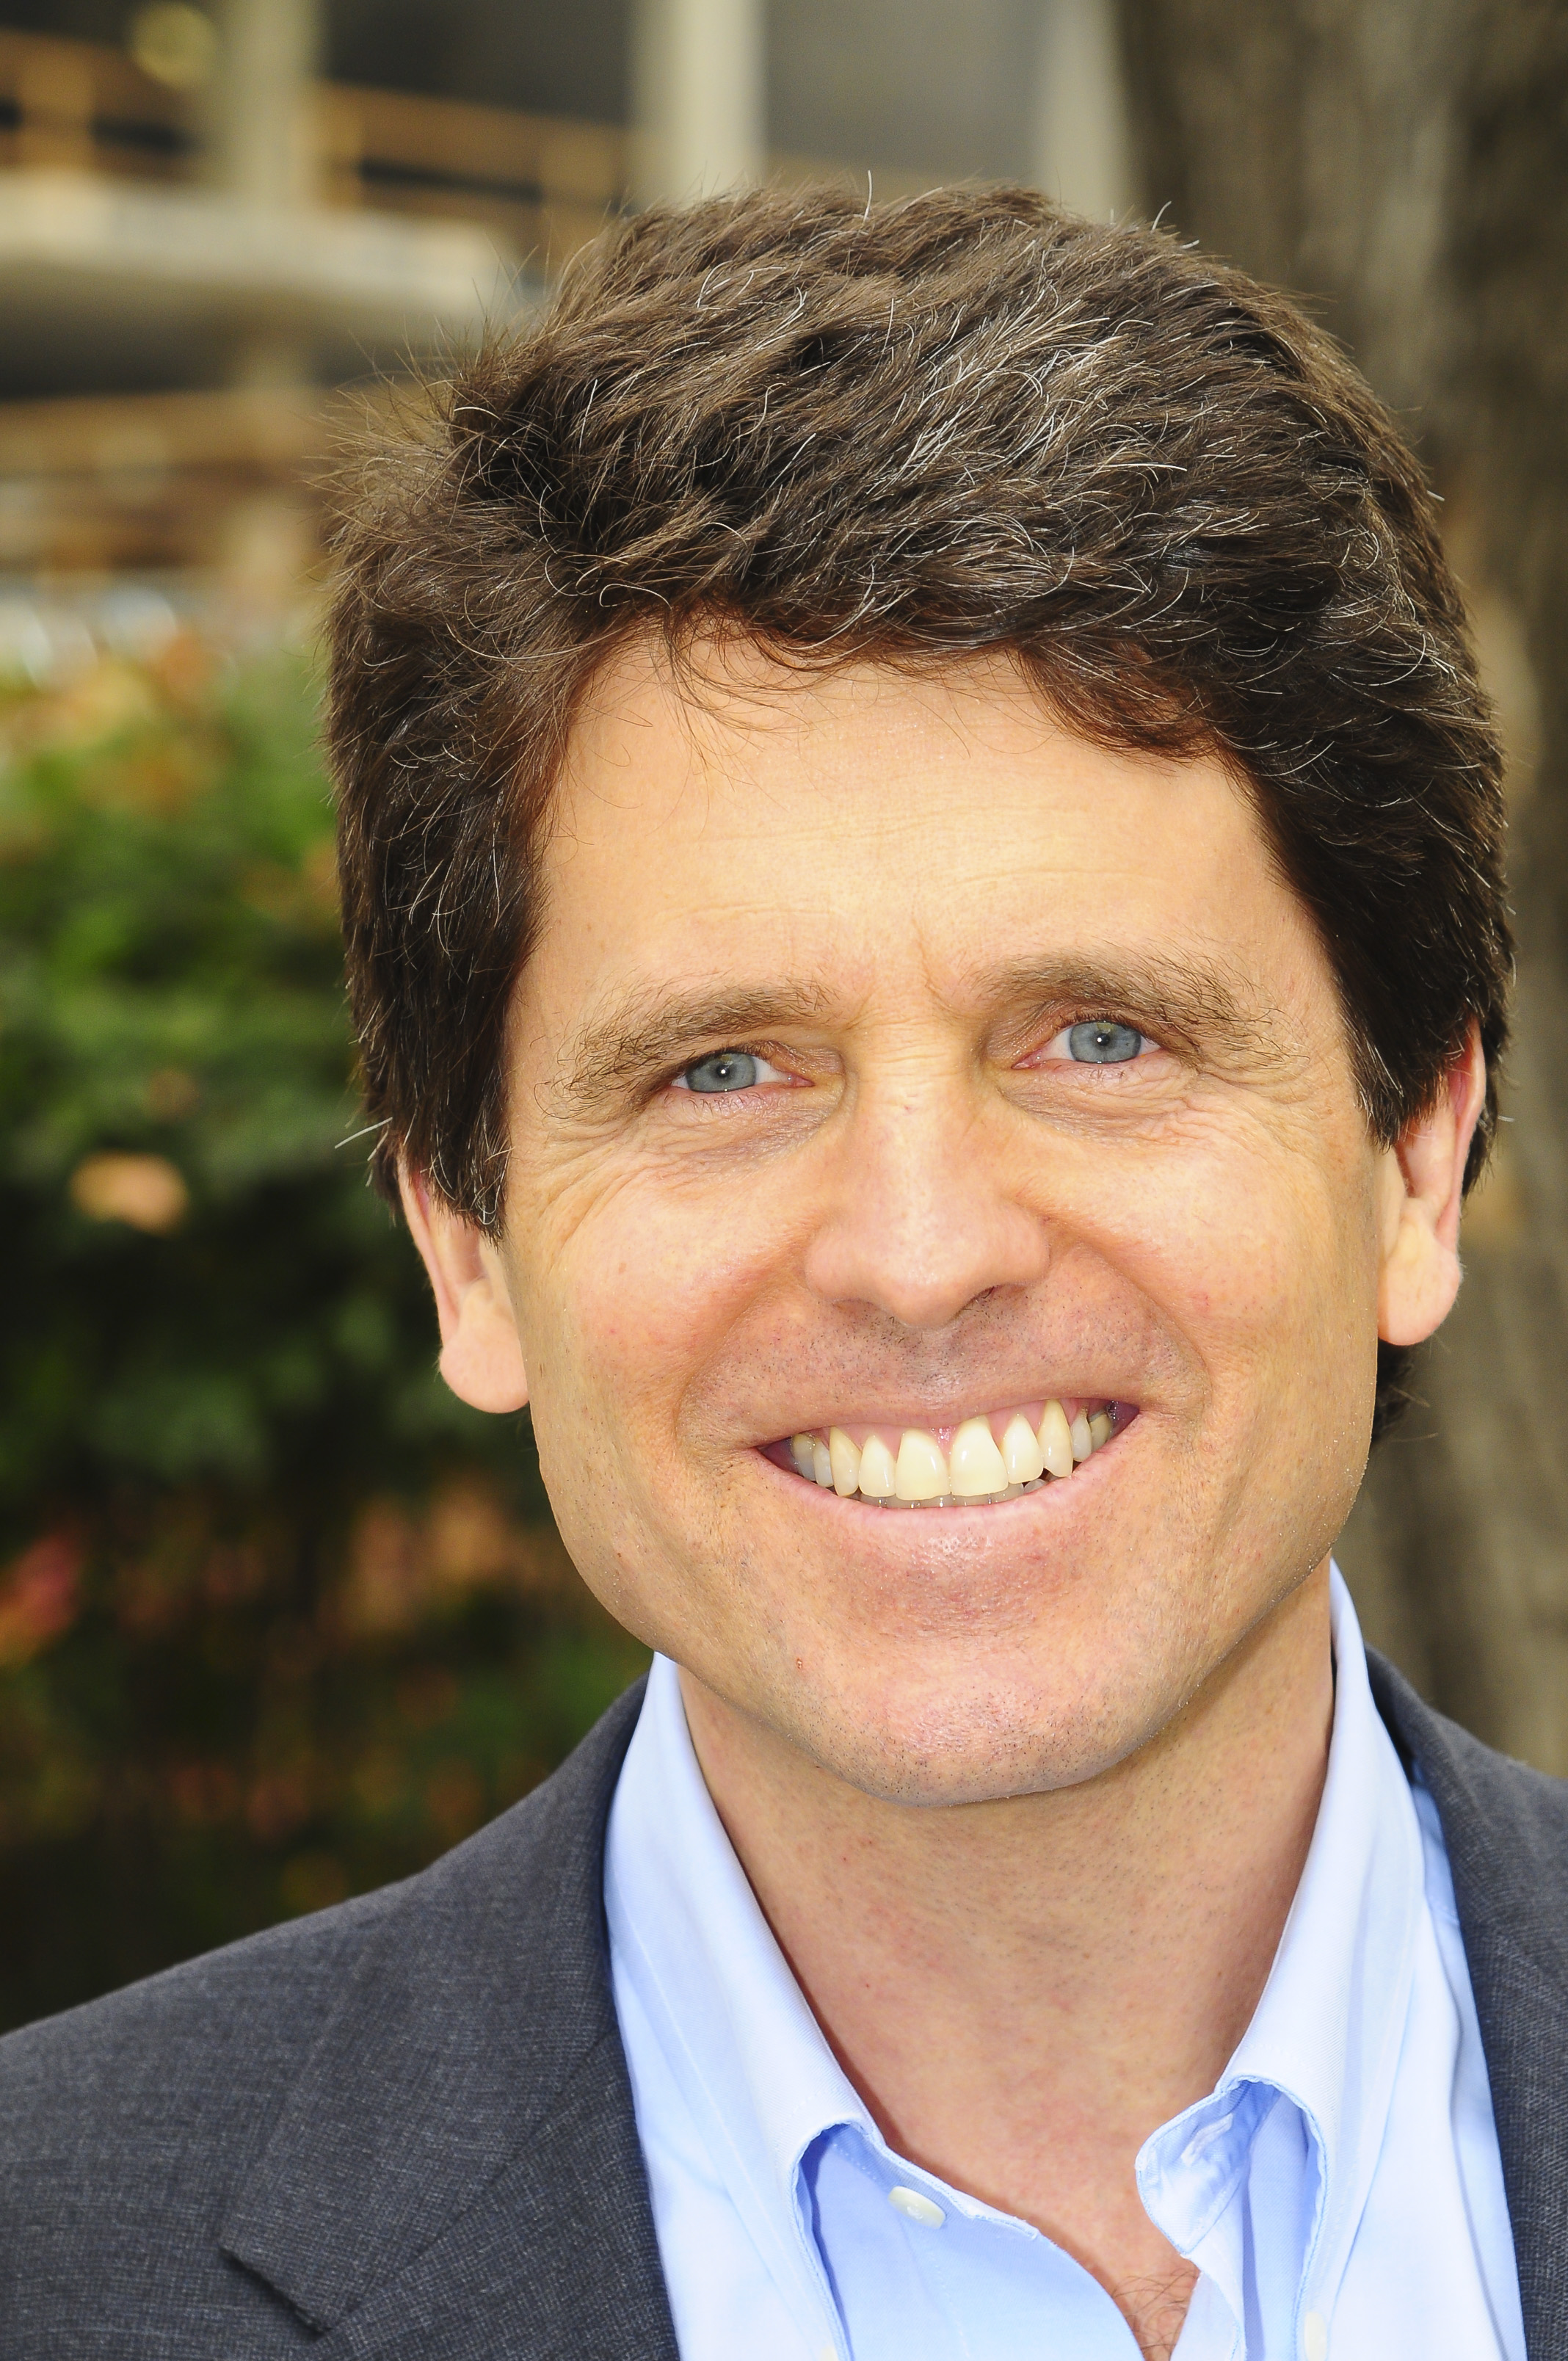 """Best-selling New York Times author Mark K. Shriver, whose latest book is """"Pilgrimage-My Search for the Real Pope Francis,"""" will be the guest speaker at the 2017 Archbishop's St. Patrick's Day Breakfast on March 17th. courtesy photo"""